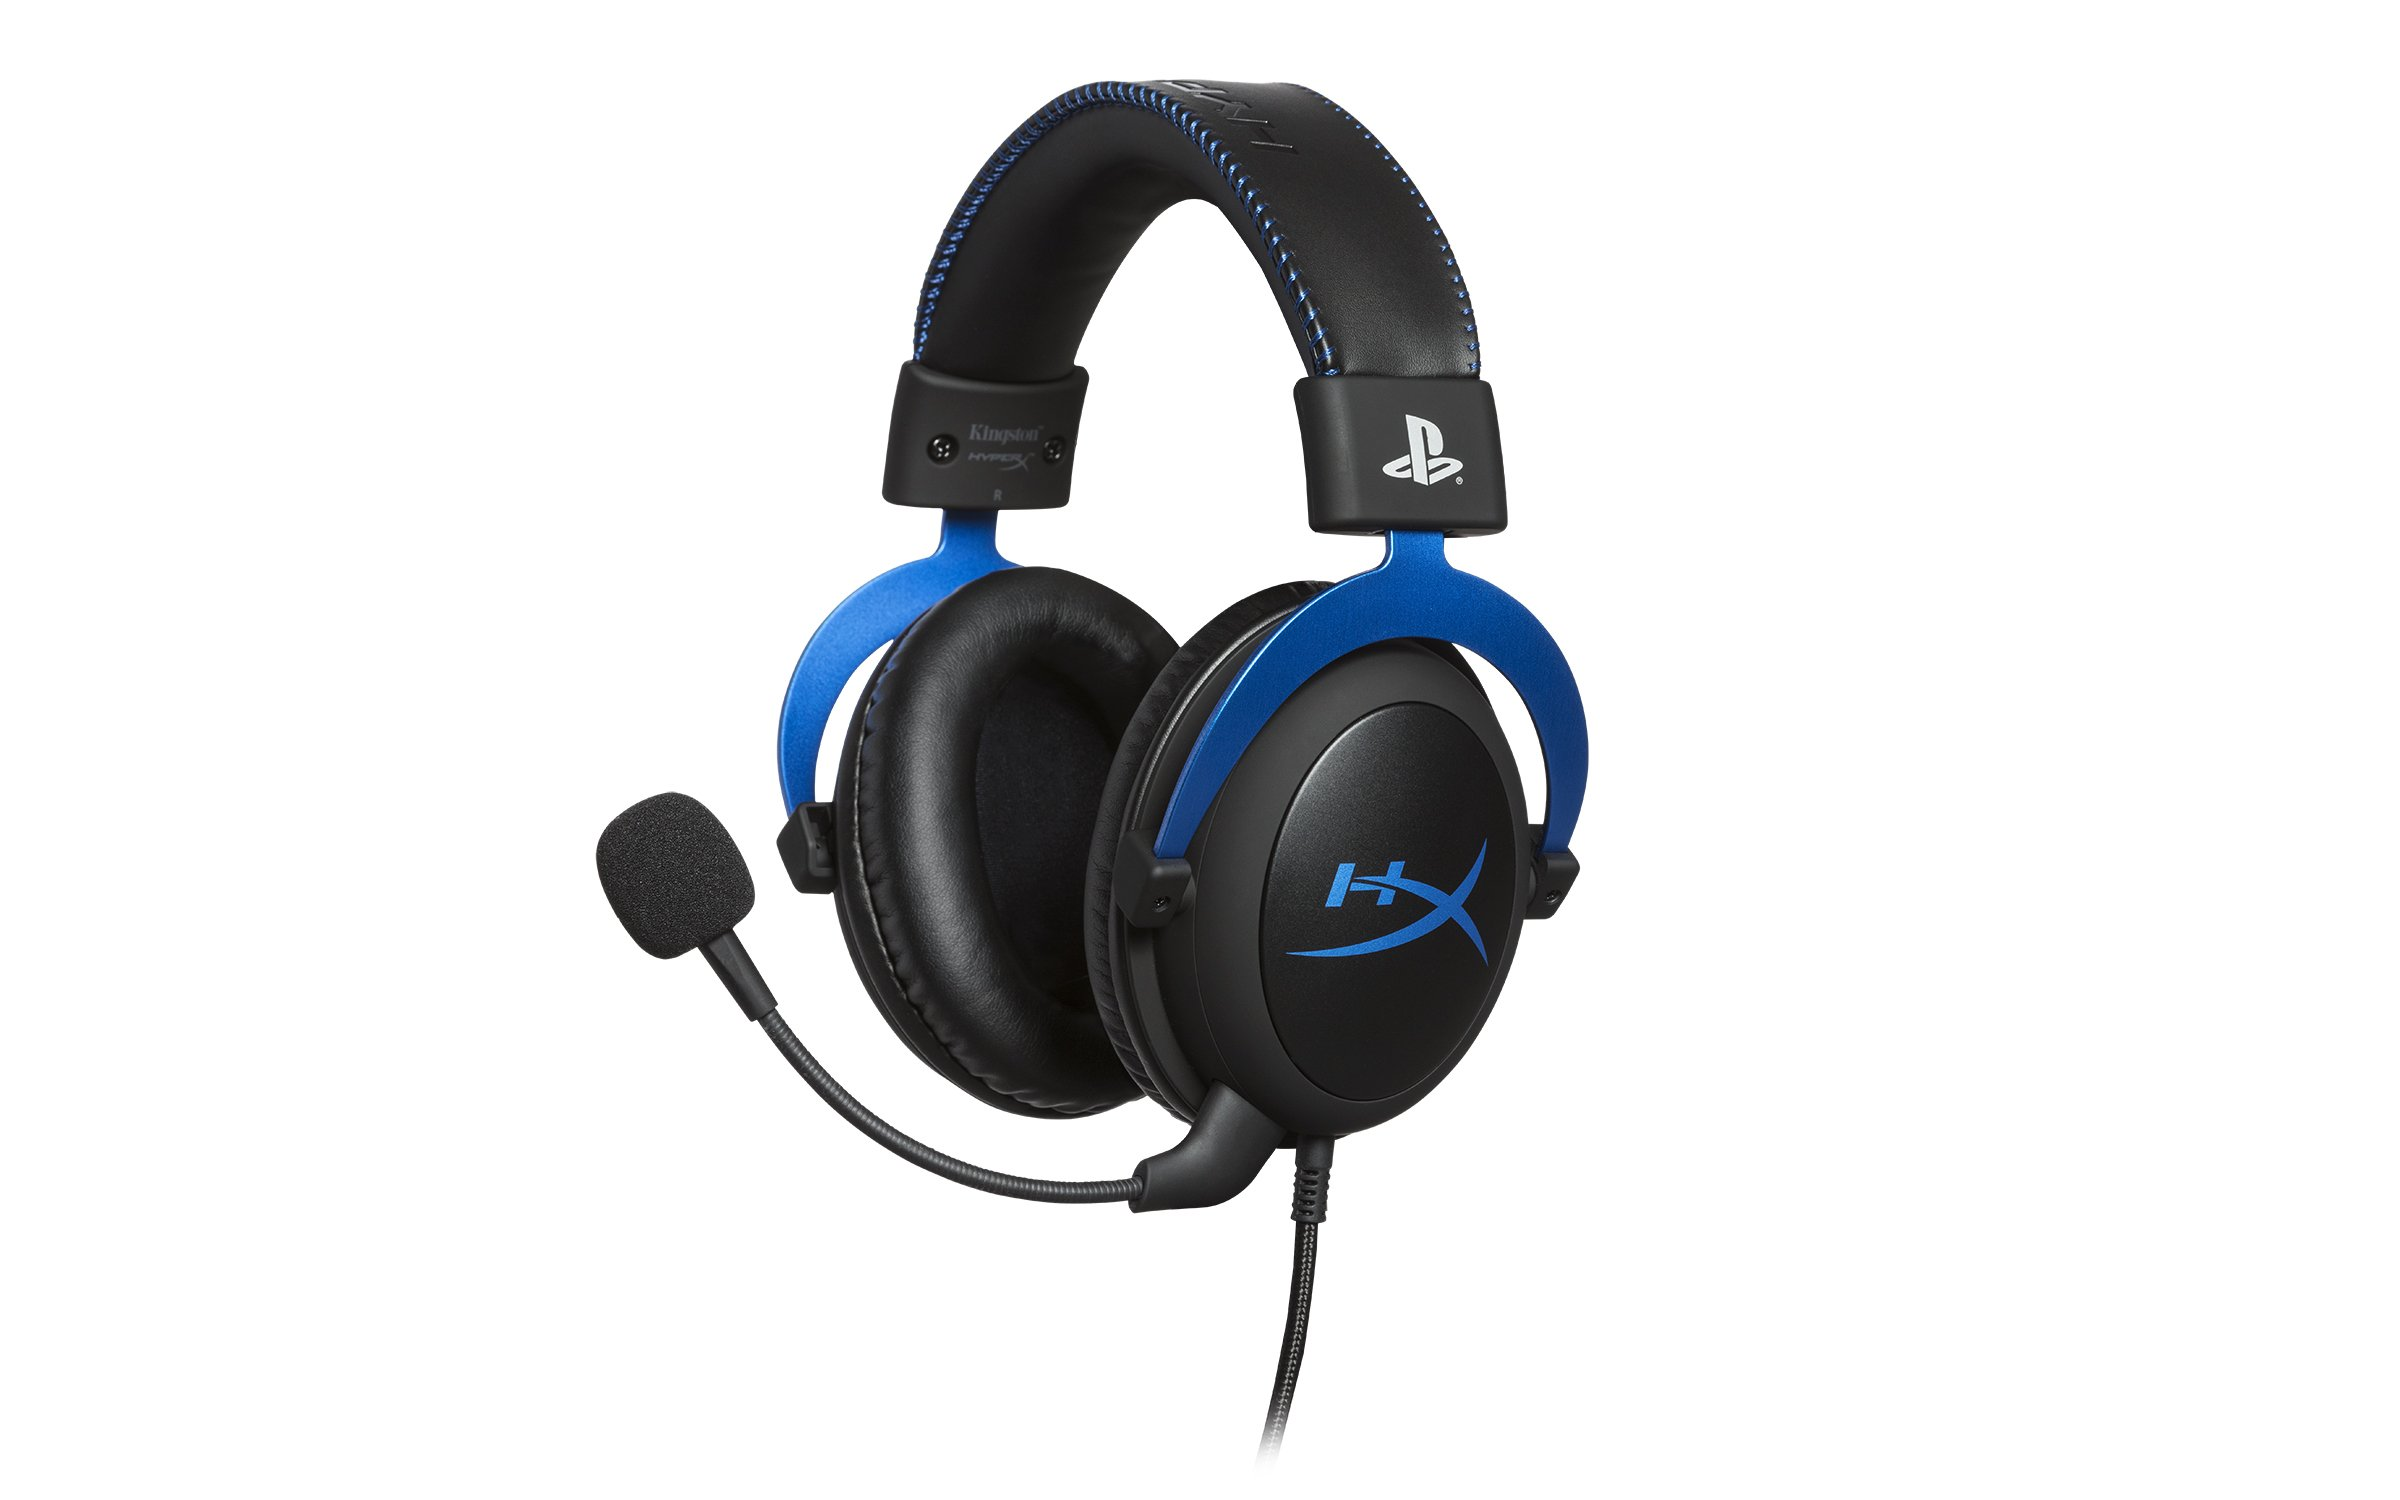 HyperX headphones for PlayStation 4